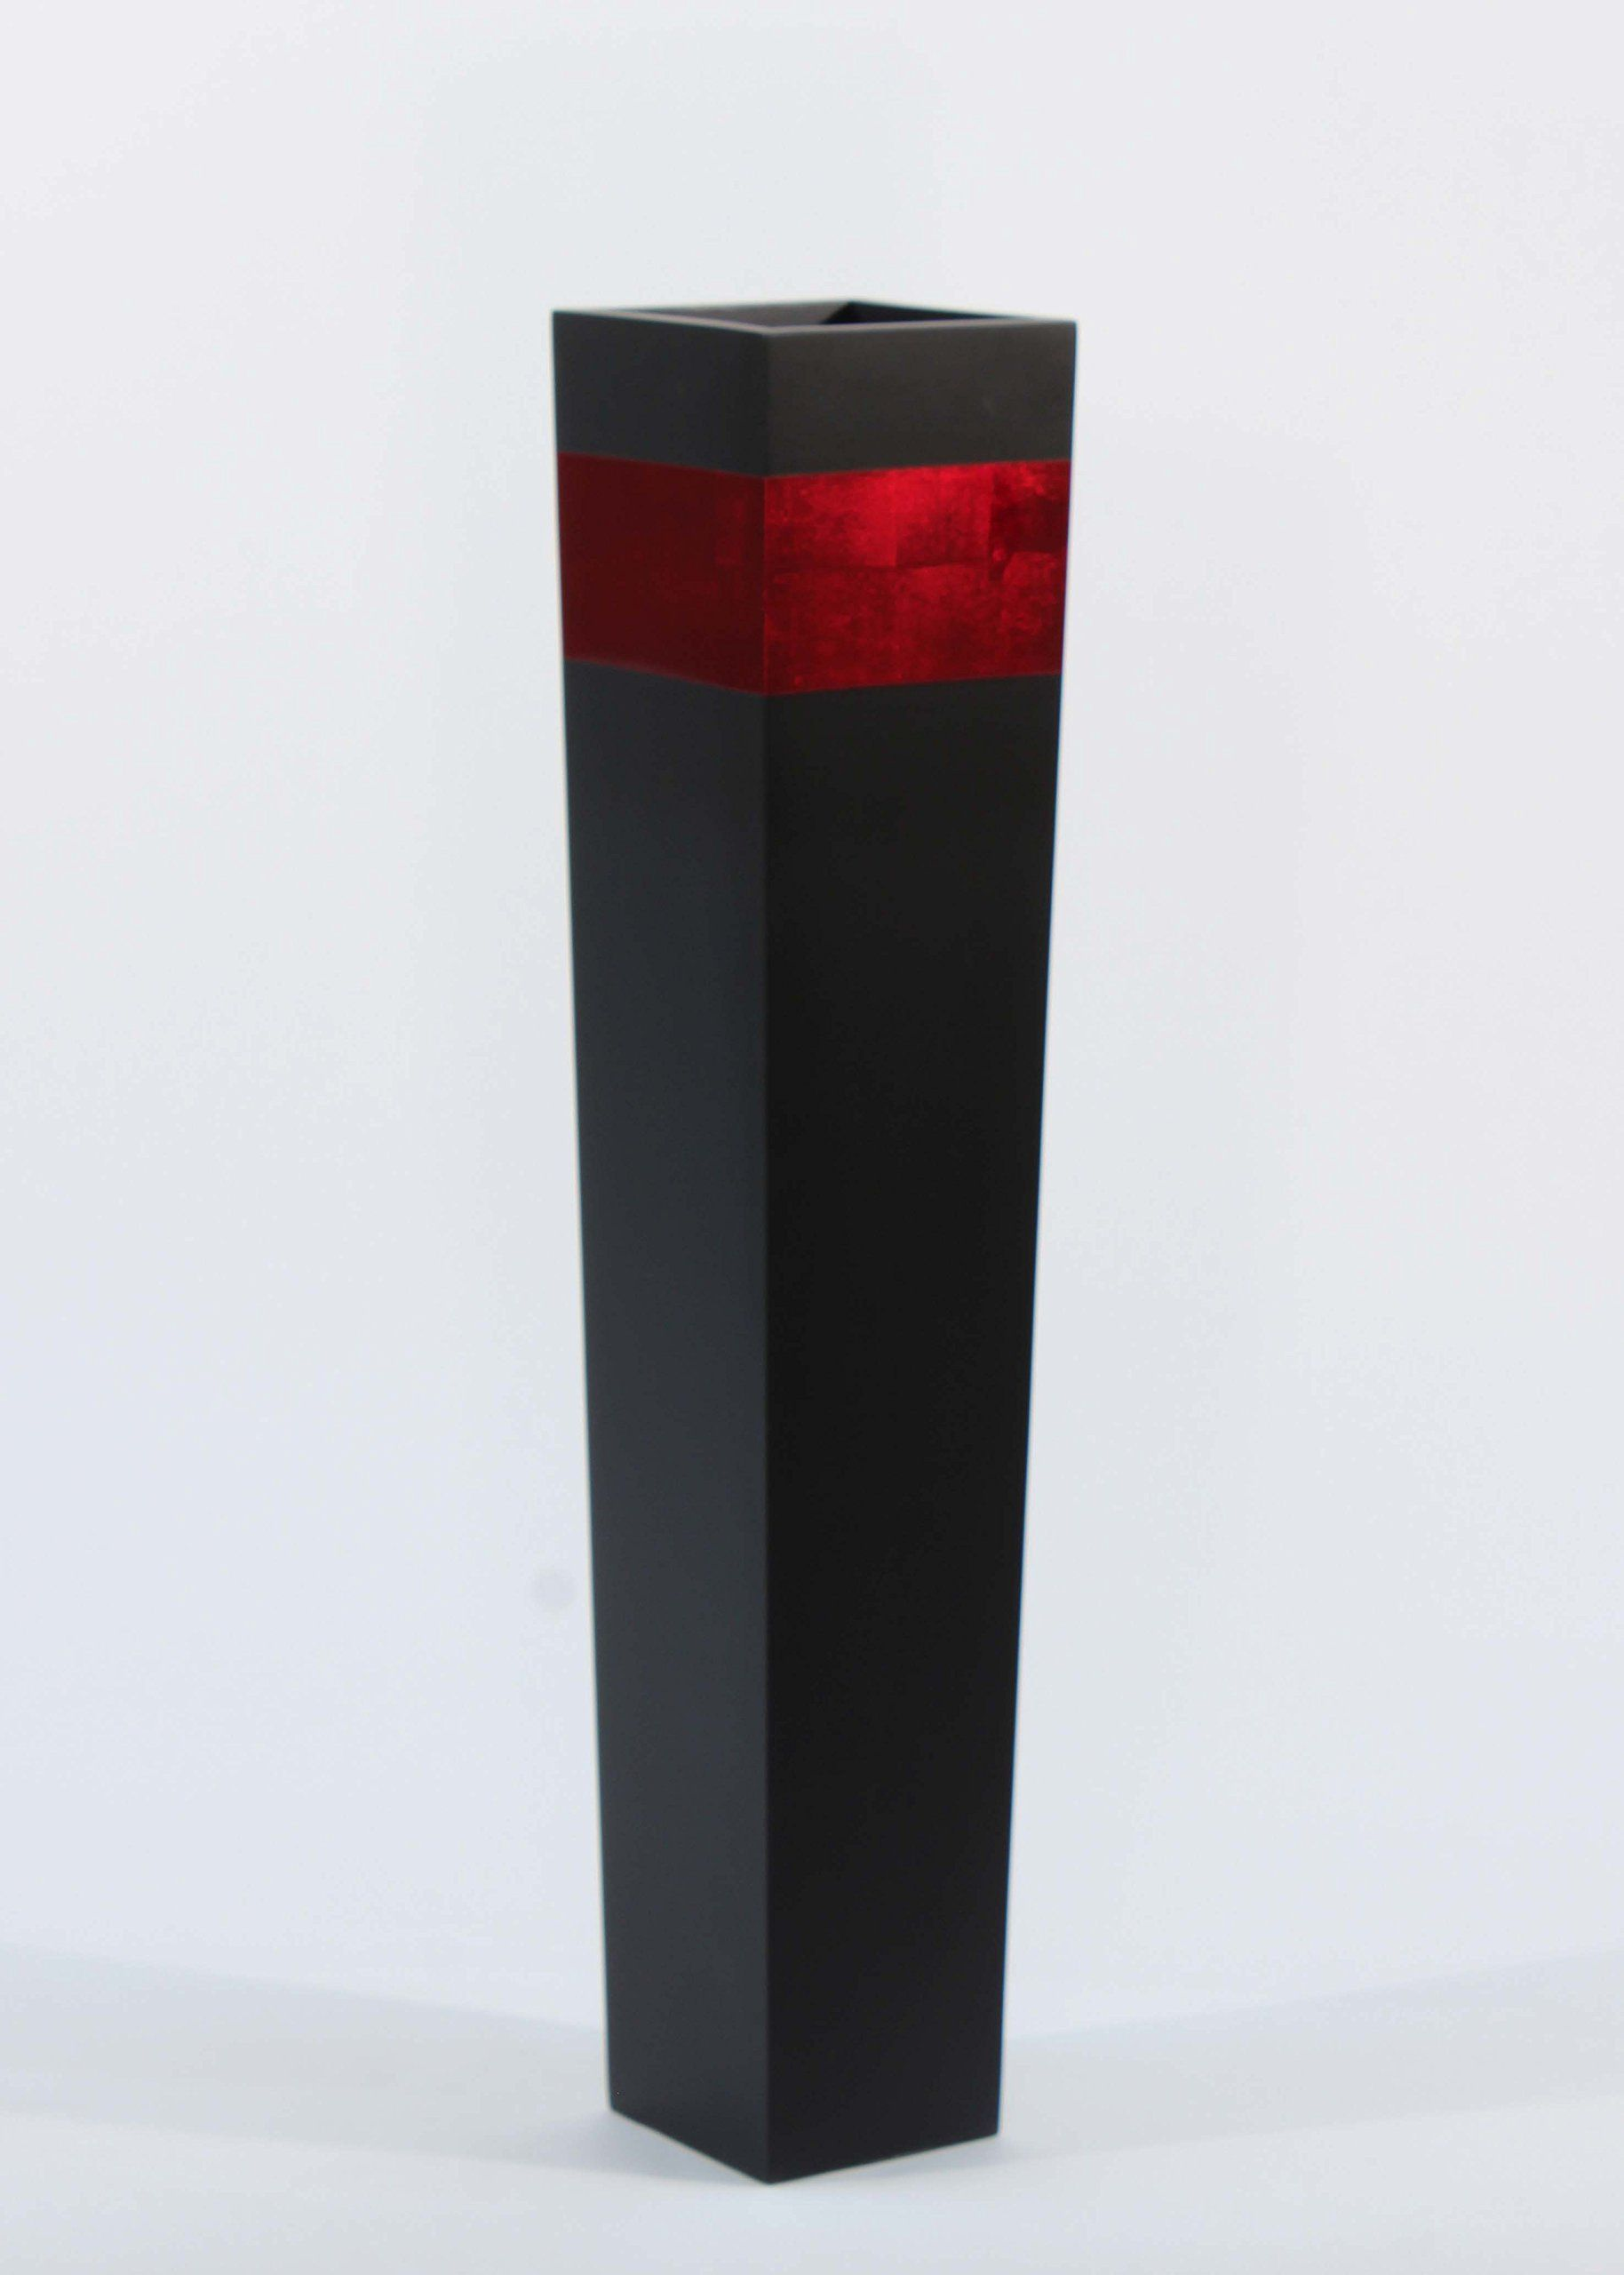 Greenfloralcrafts 27 Slender Tapered Tall Black Floor Vase Red